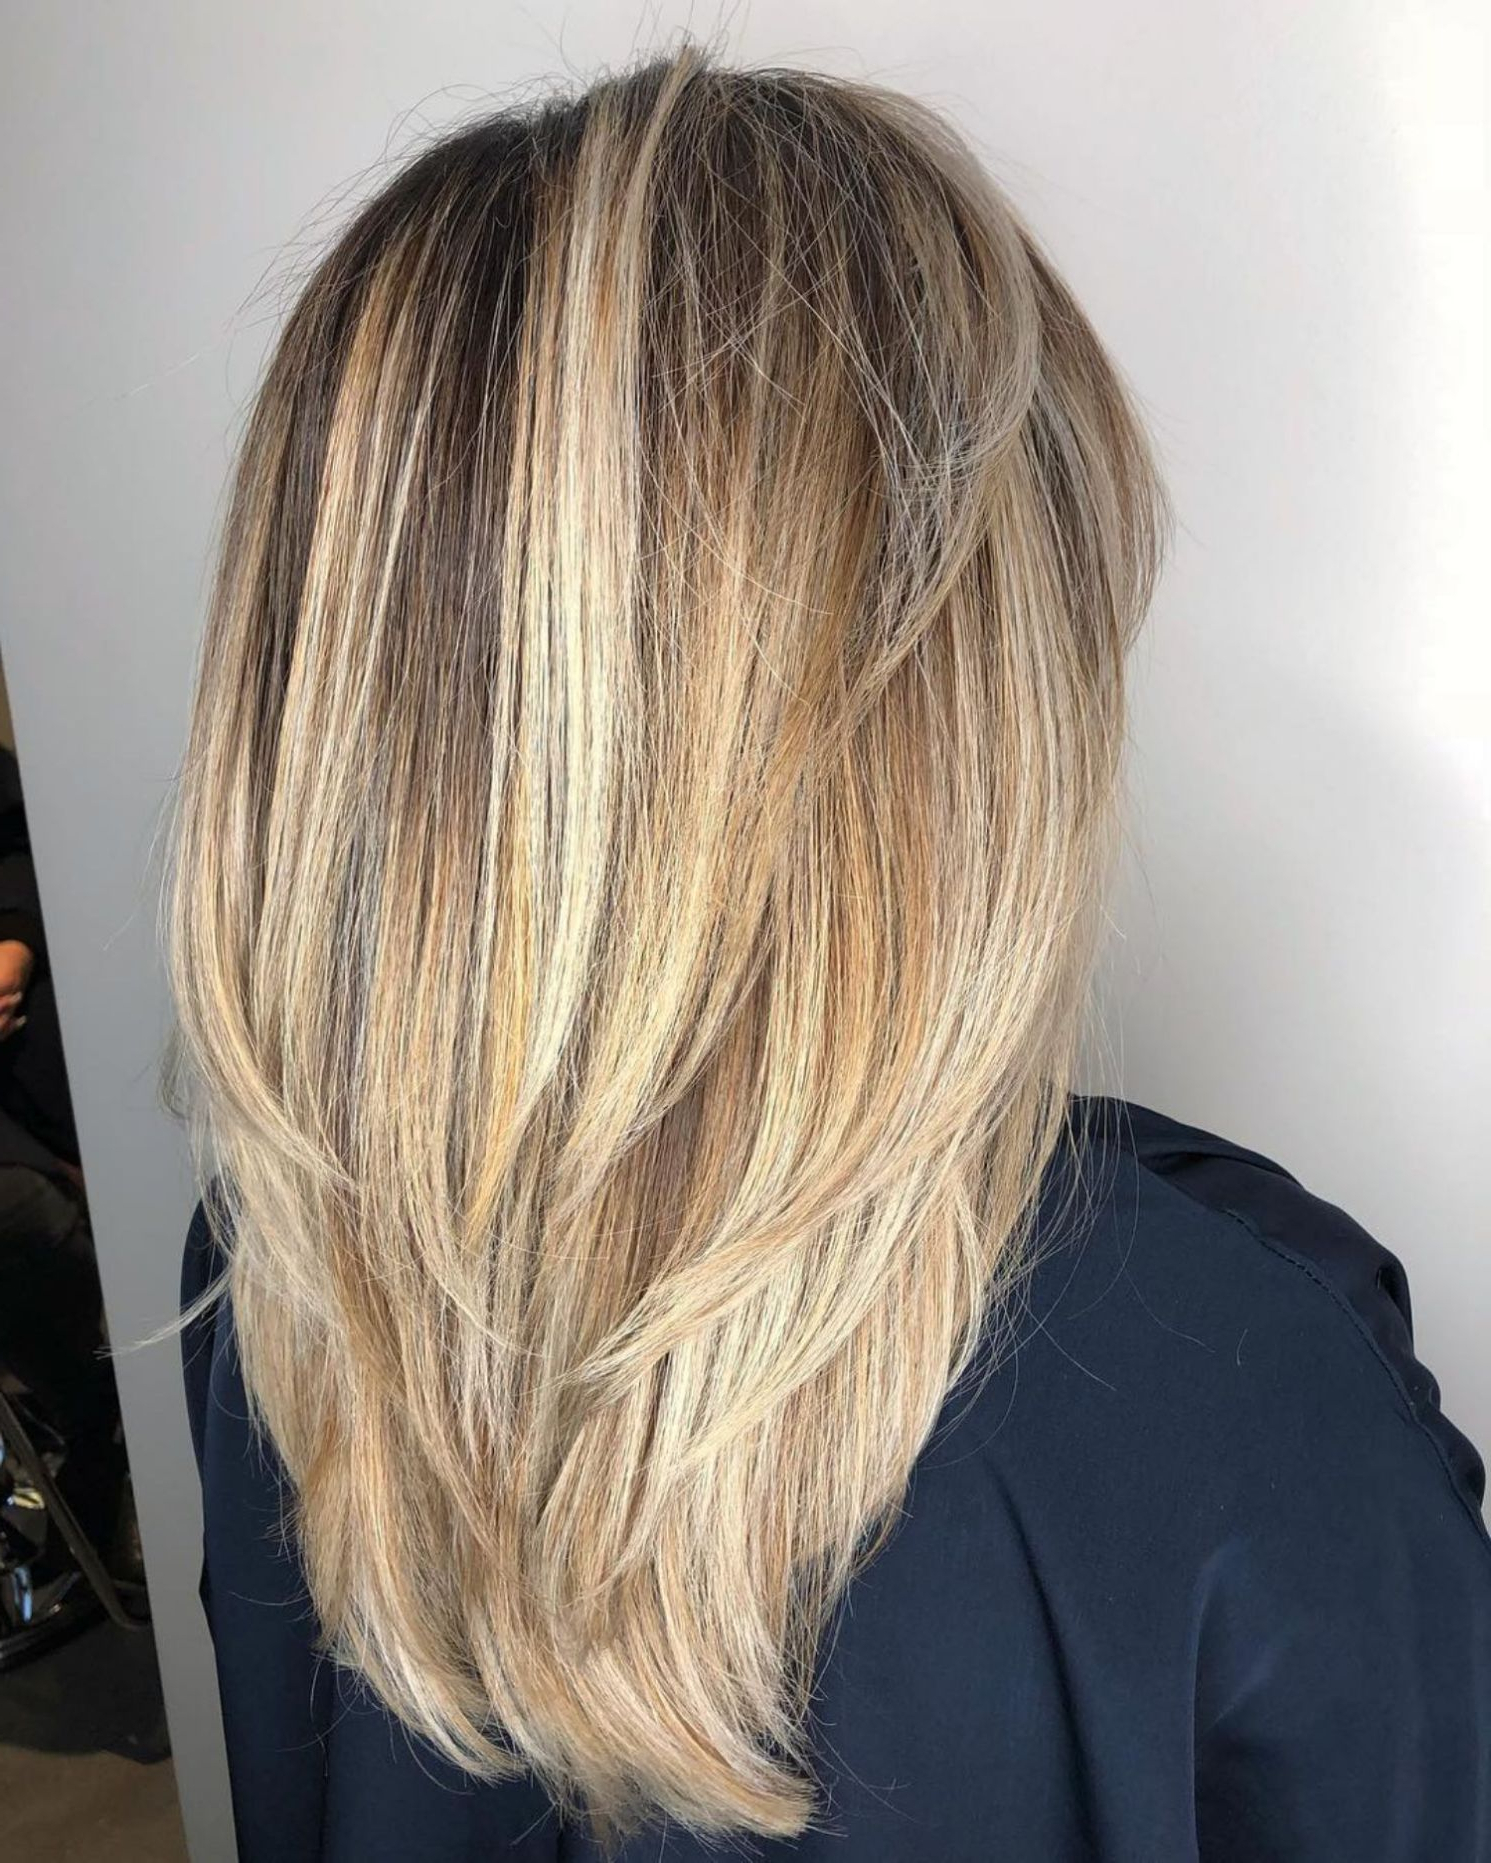 Recent Edgy V Line Layers For Long Hairstyles With Regard To 80 Cute Layered Hairstyles And Cuts For Long Hair In 2019 (Gallery 2 of 20)